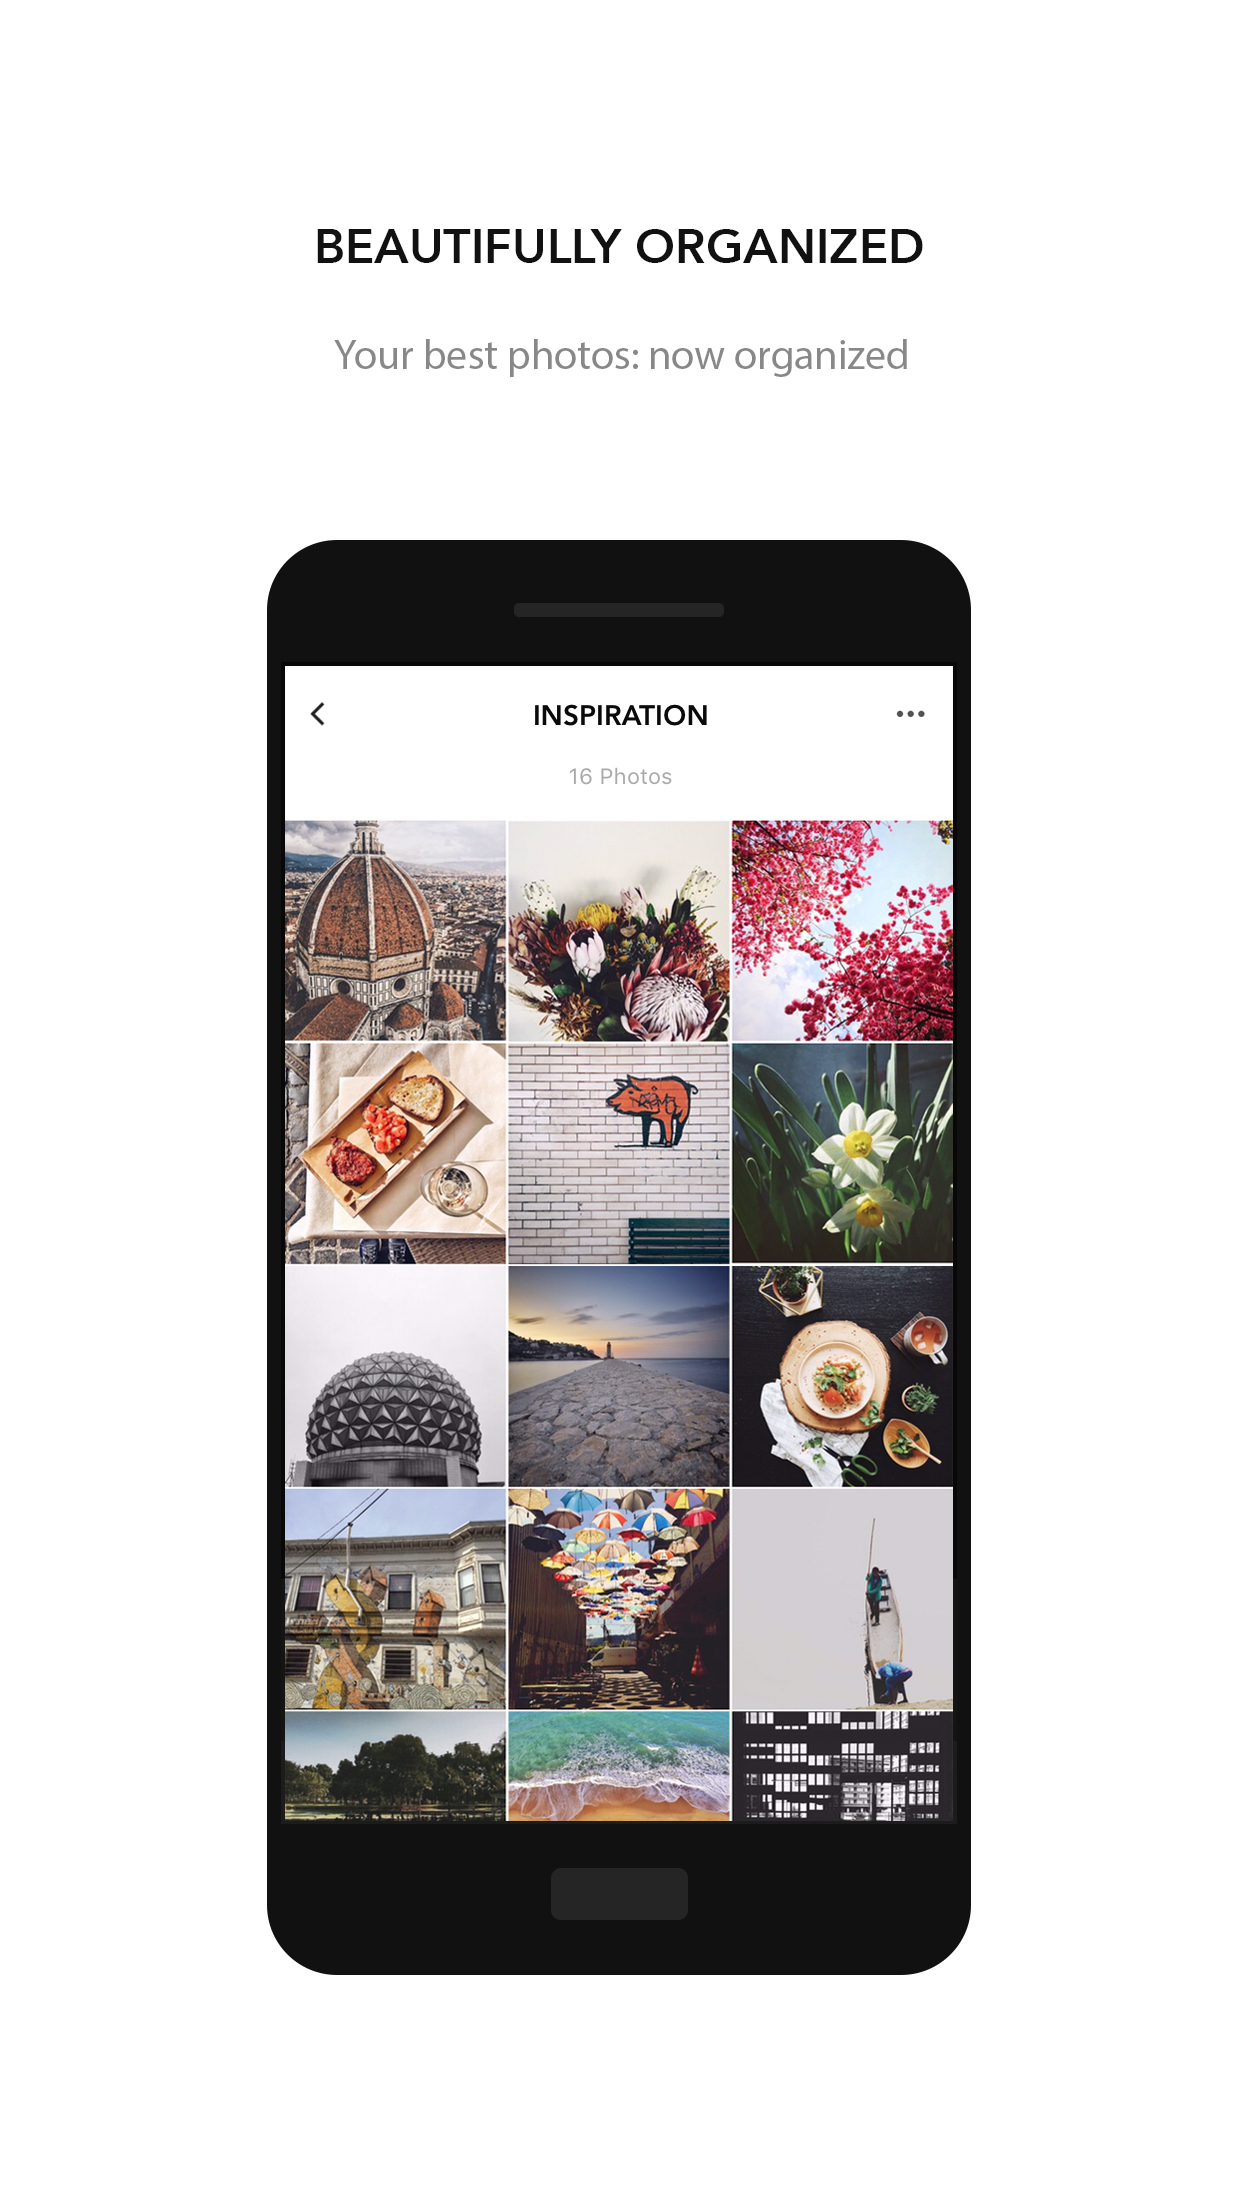 Slidebox brings its Tinder-like photo management app to Android